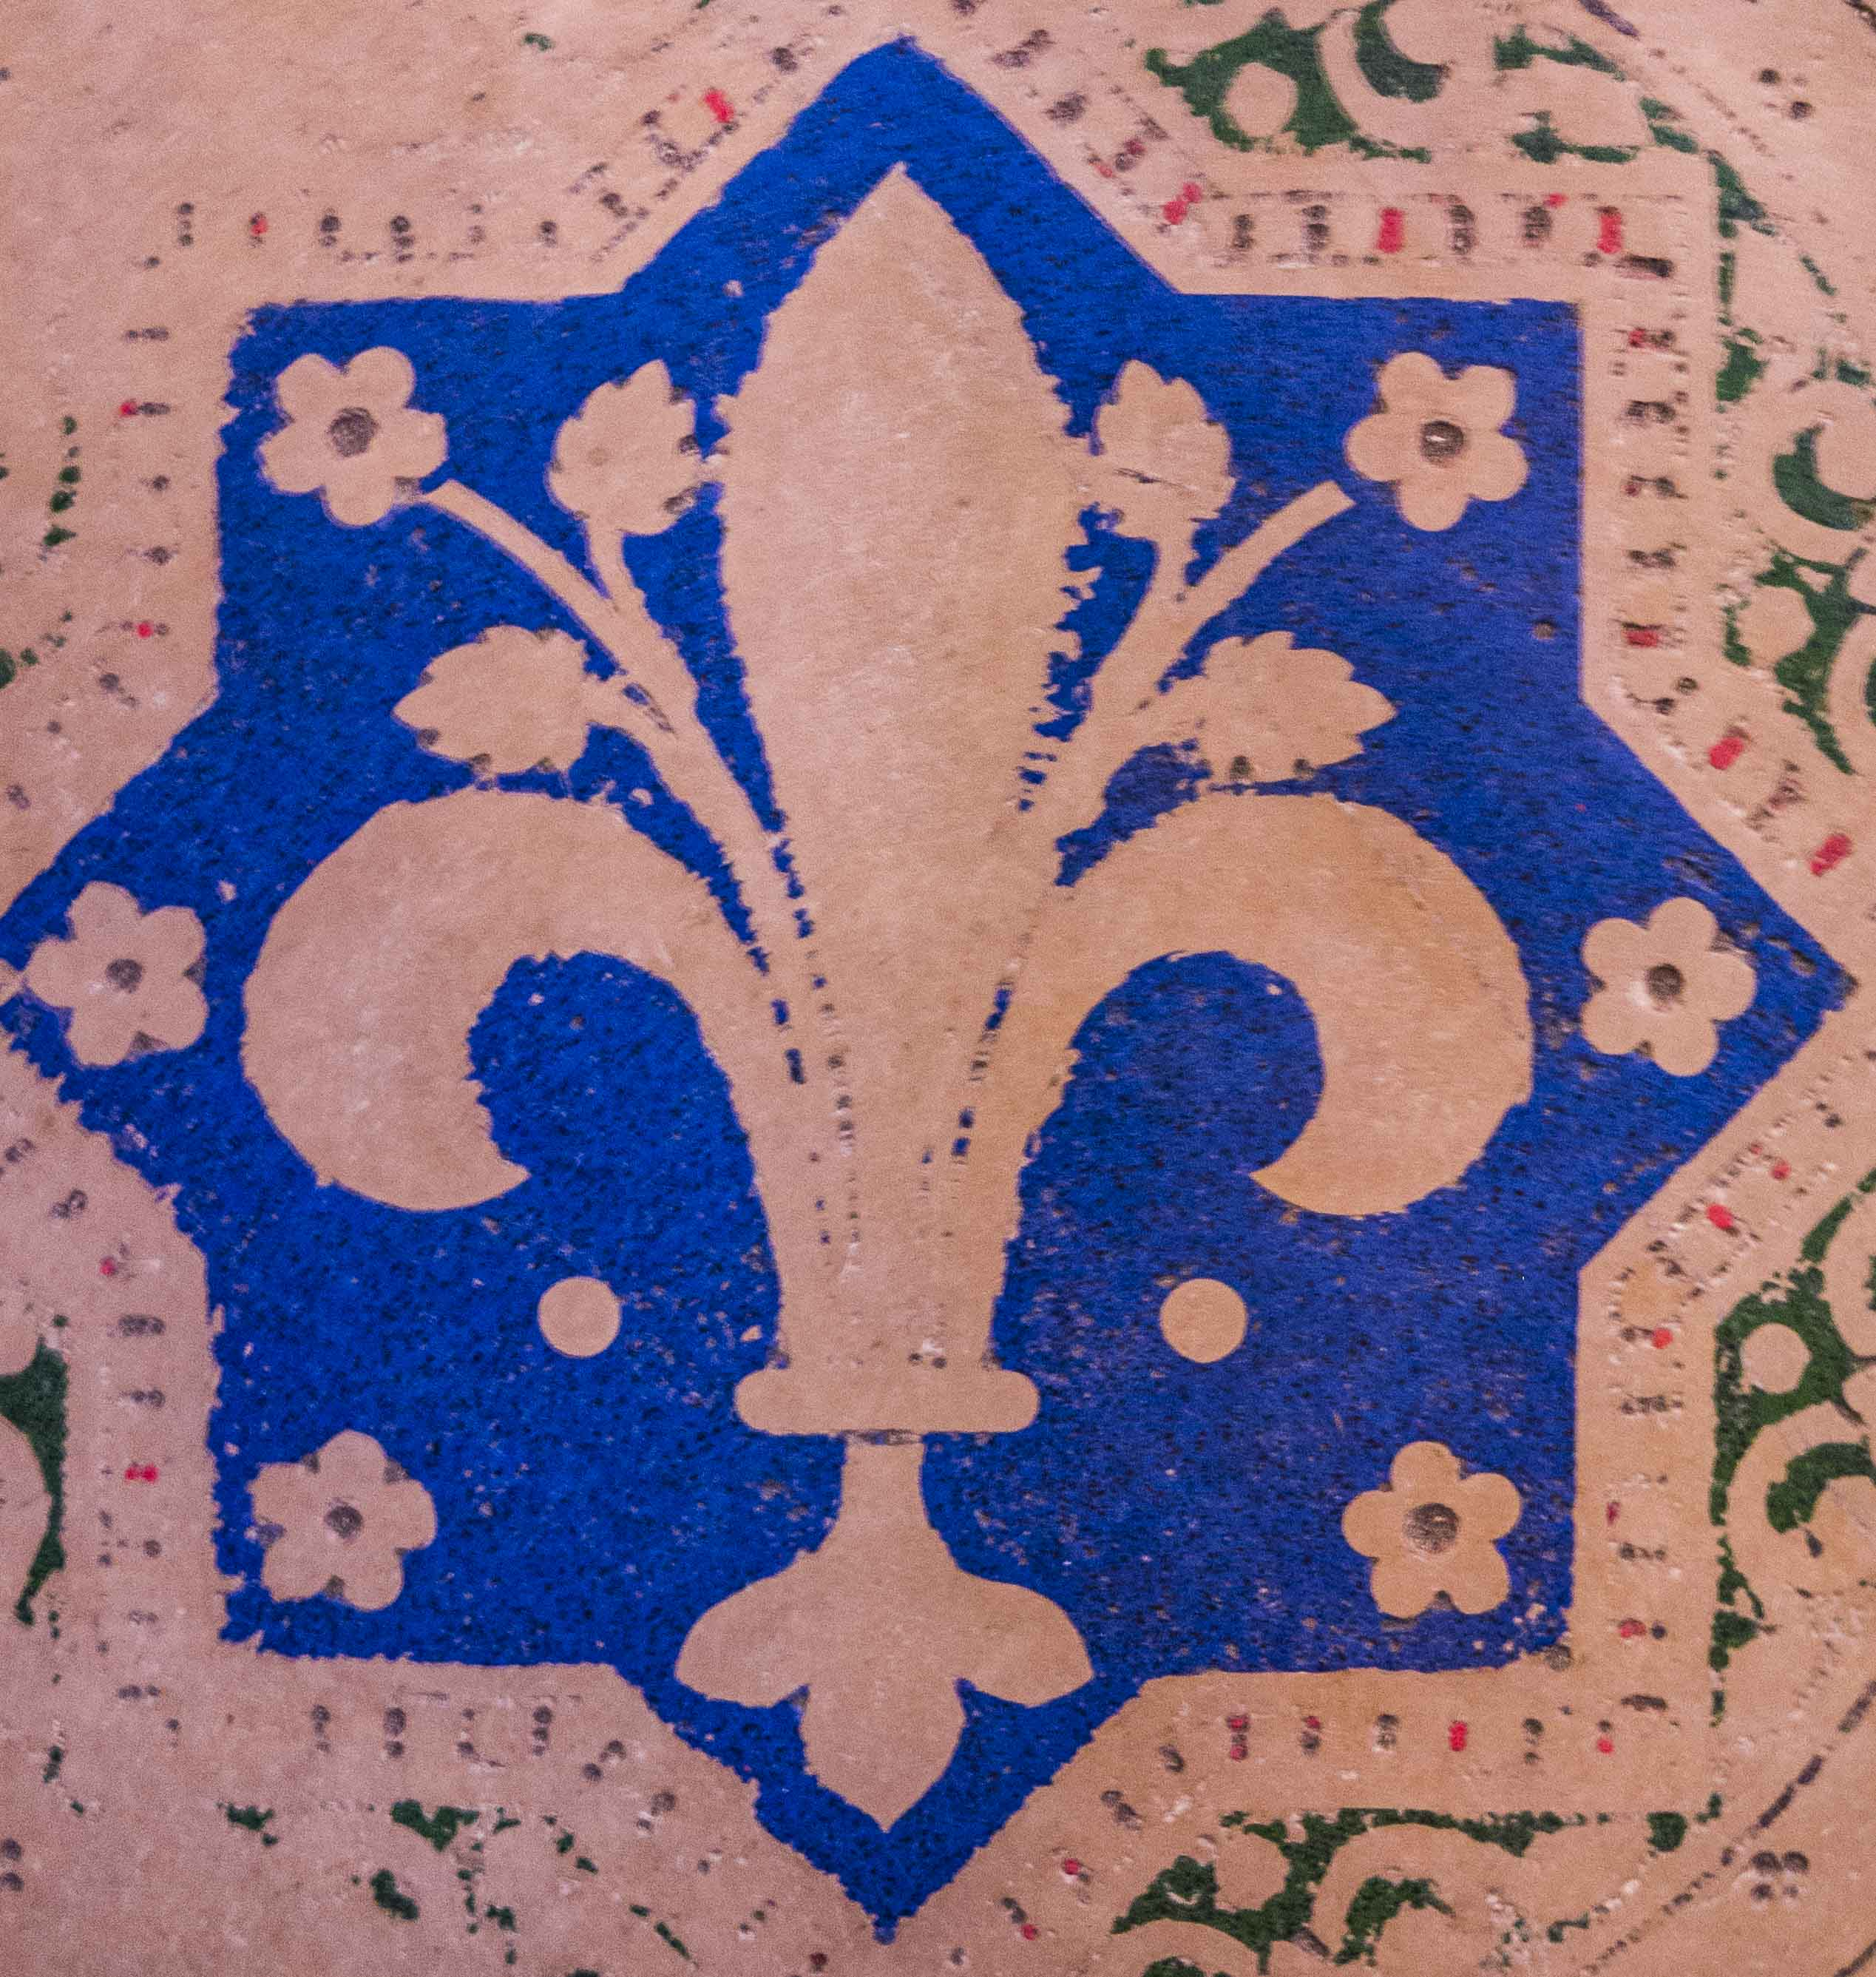 Sainte-Chapelle-floor-decoration